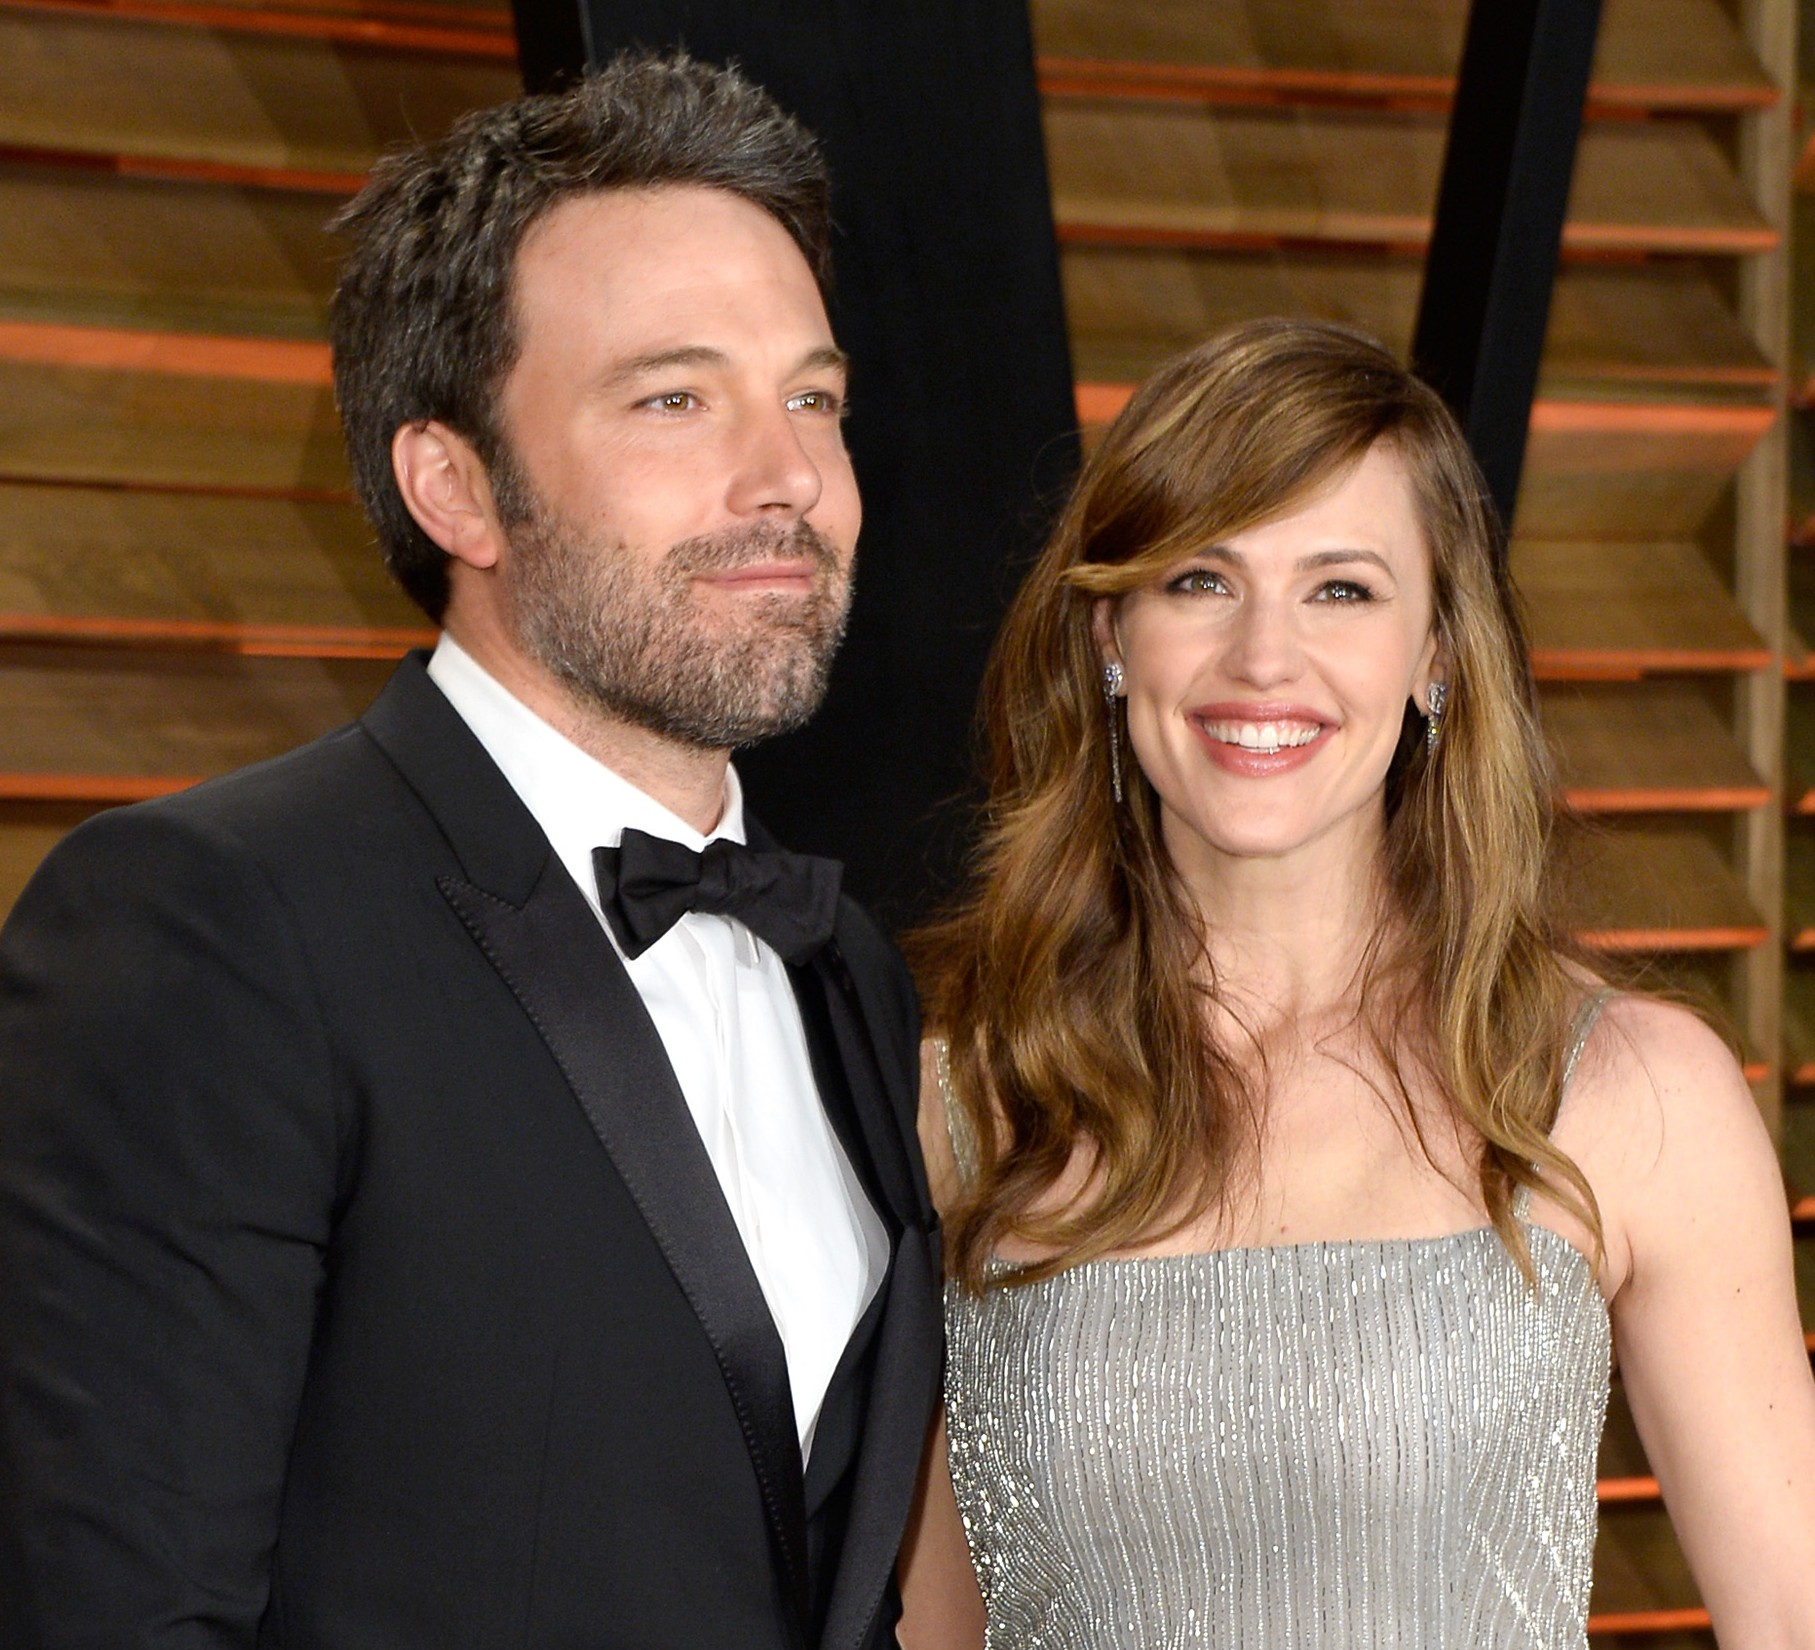 Affleck and Garner at an Oscars party in 2014. Getty